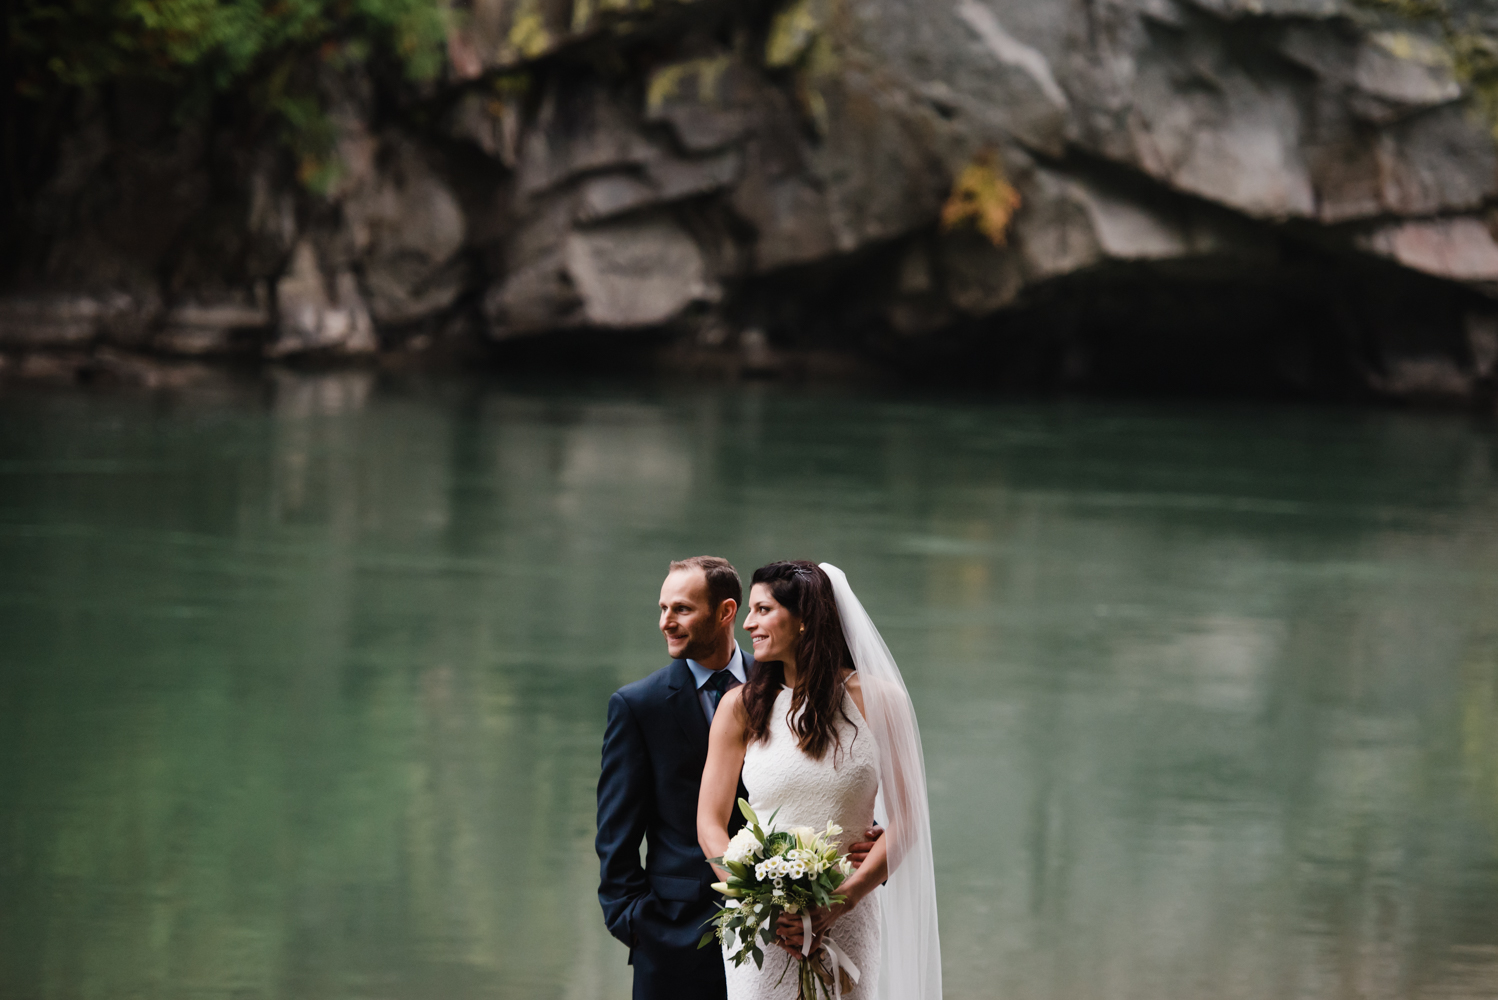 Squamish Wedding Photographer101.jpg